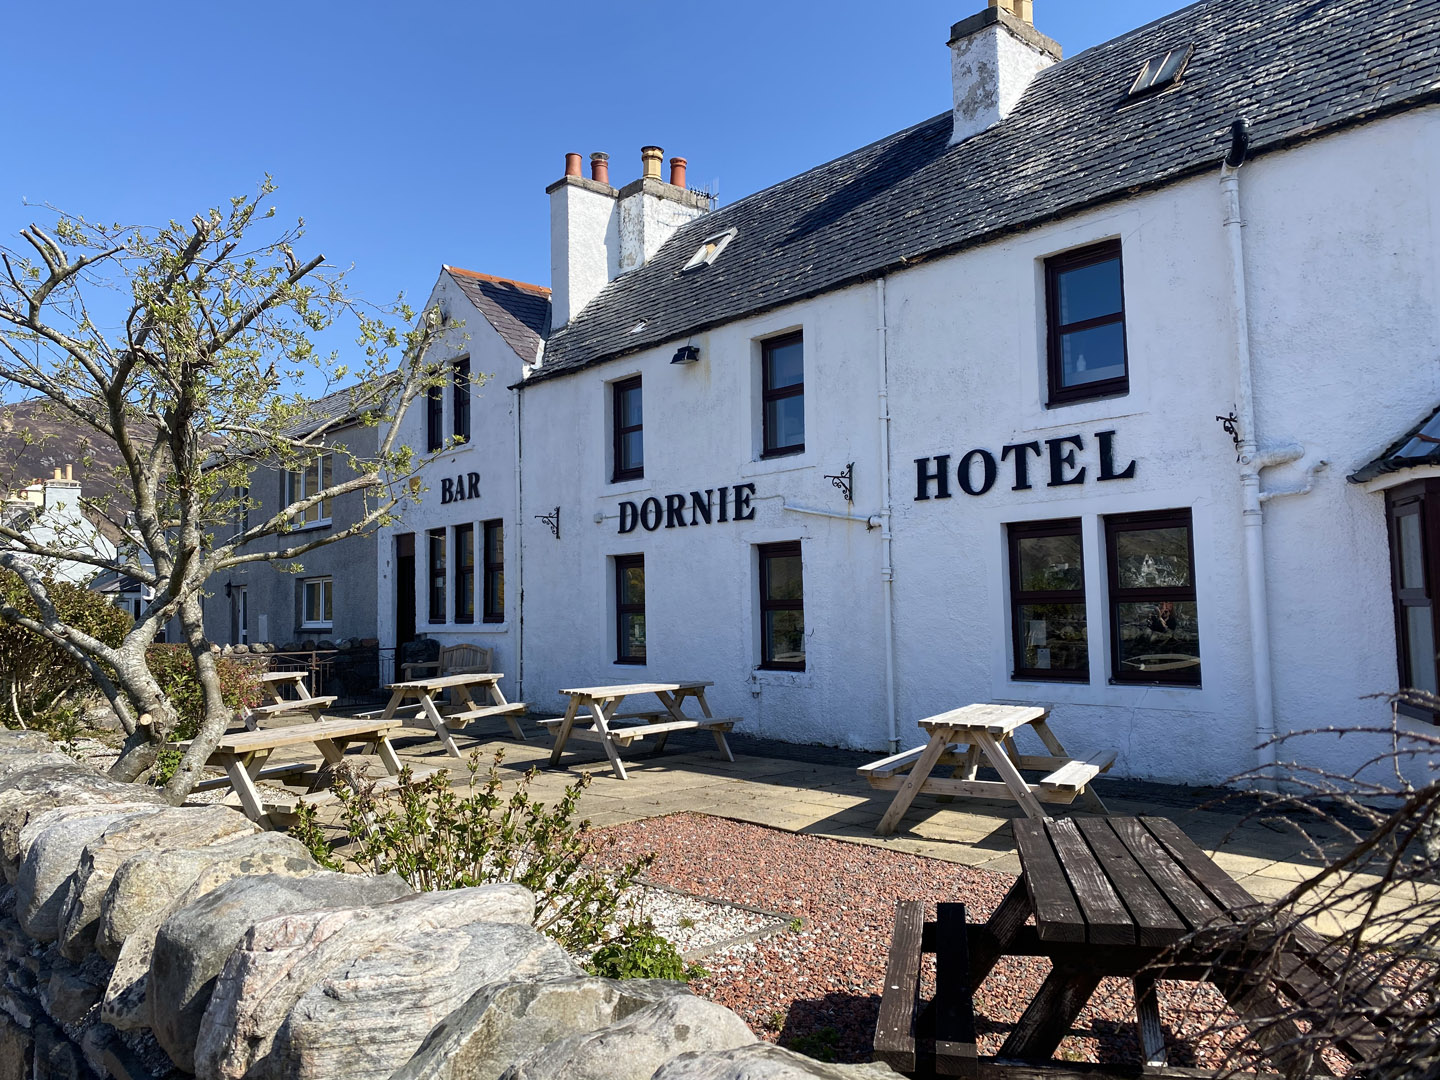 Outside seating area | Hotel in the Highlands